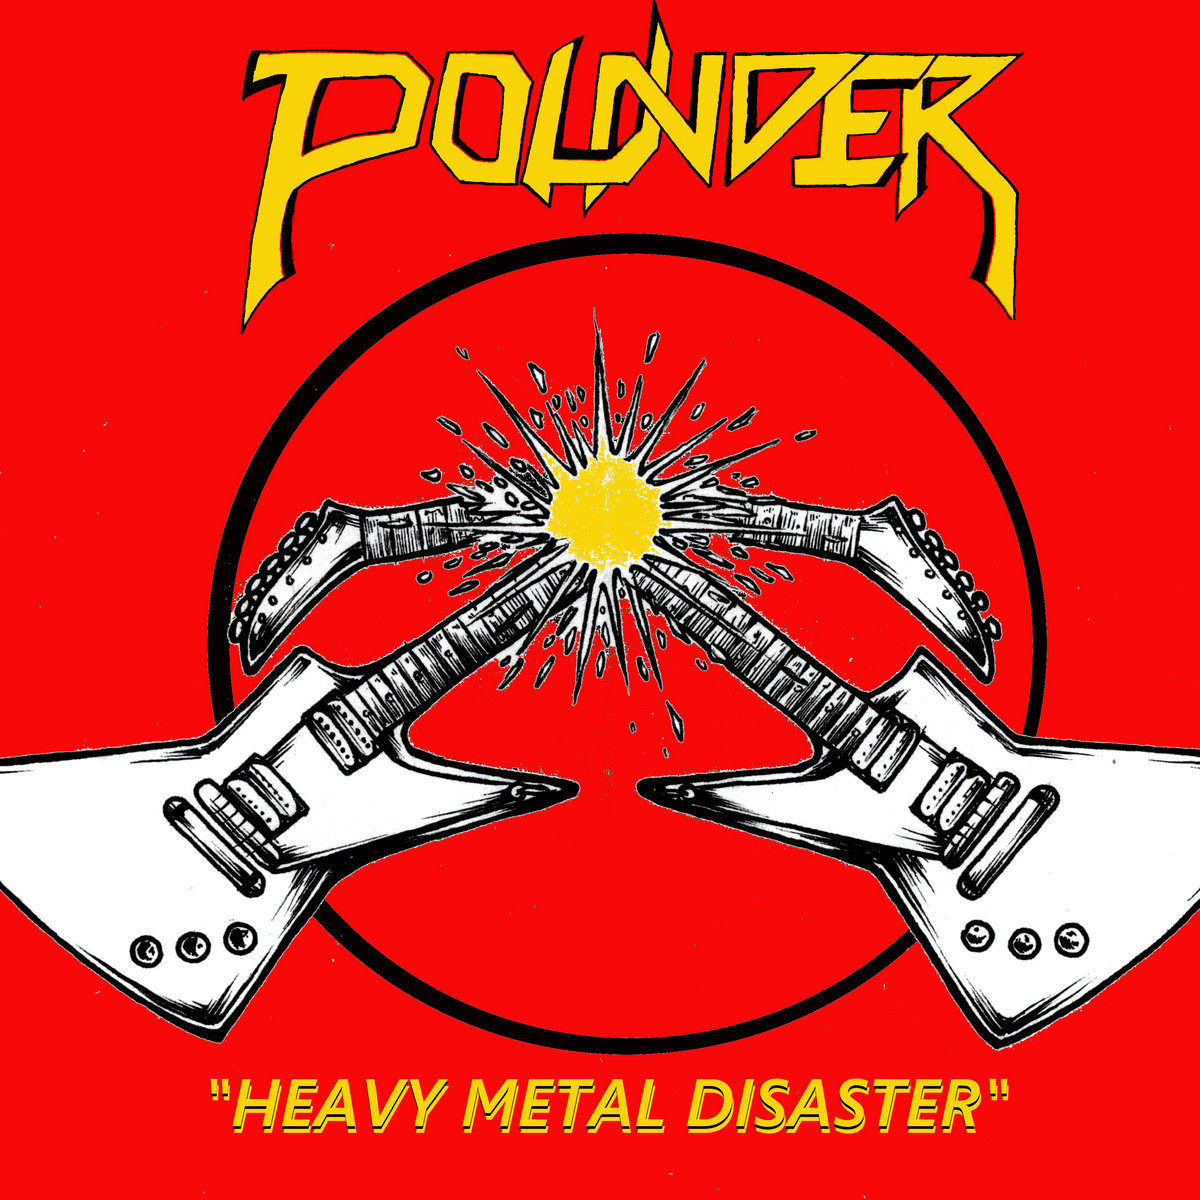 On Heavy Metal Heavy Metal Disaster Pounder